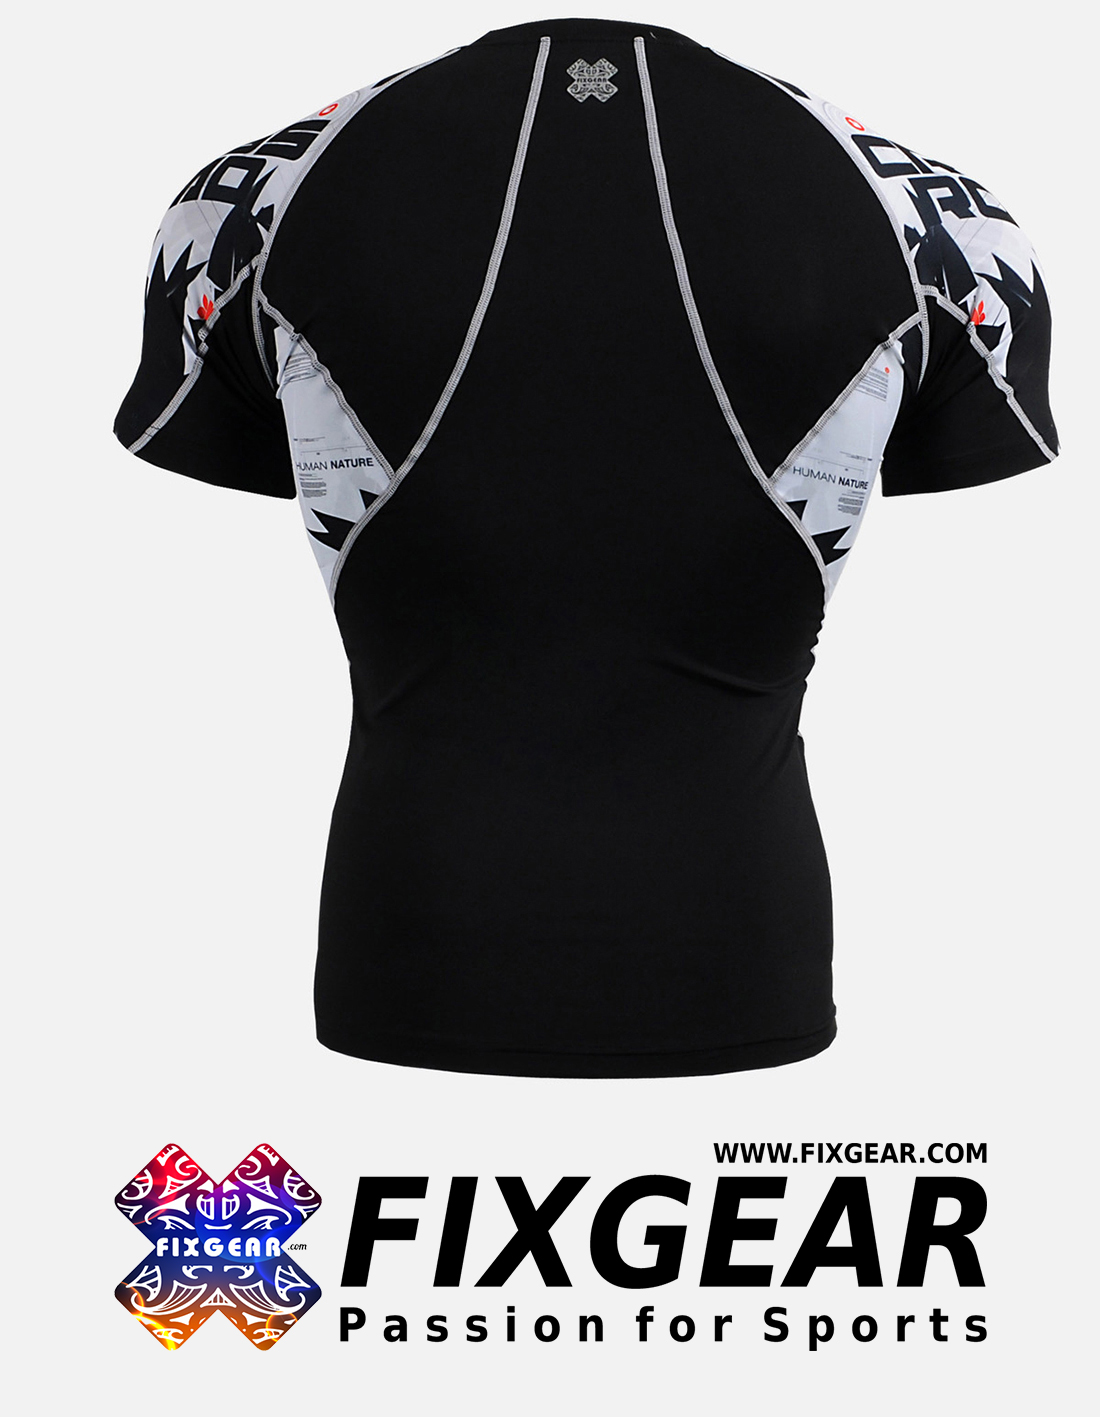 FIXGEAR C2S-B17 Compression Base Layer Shirt Short Sleeve